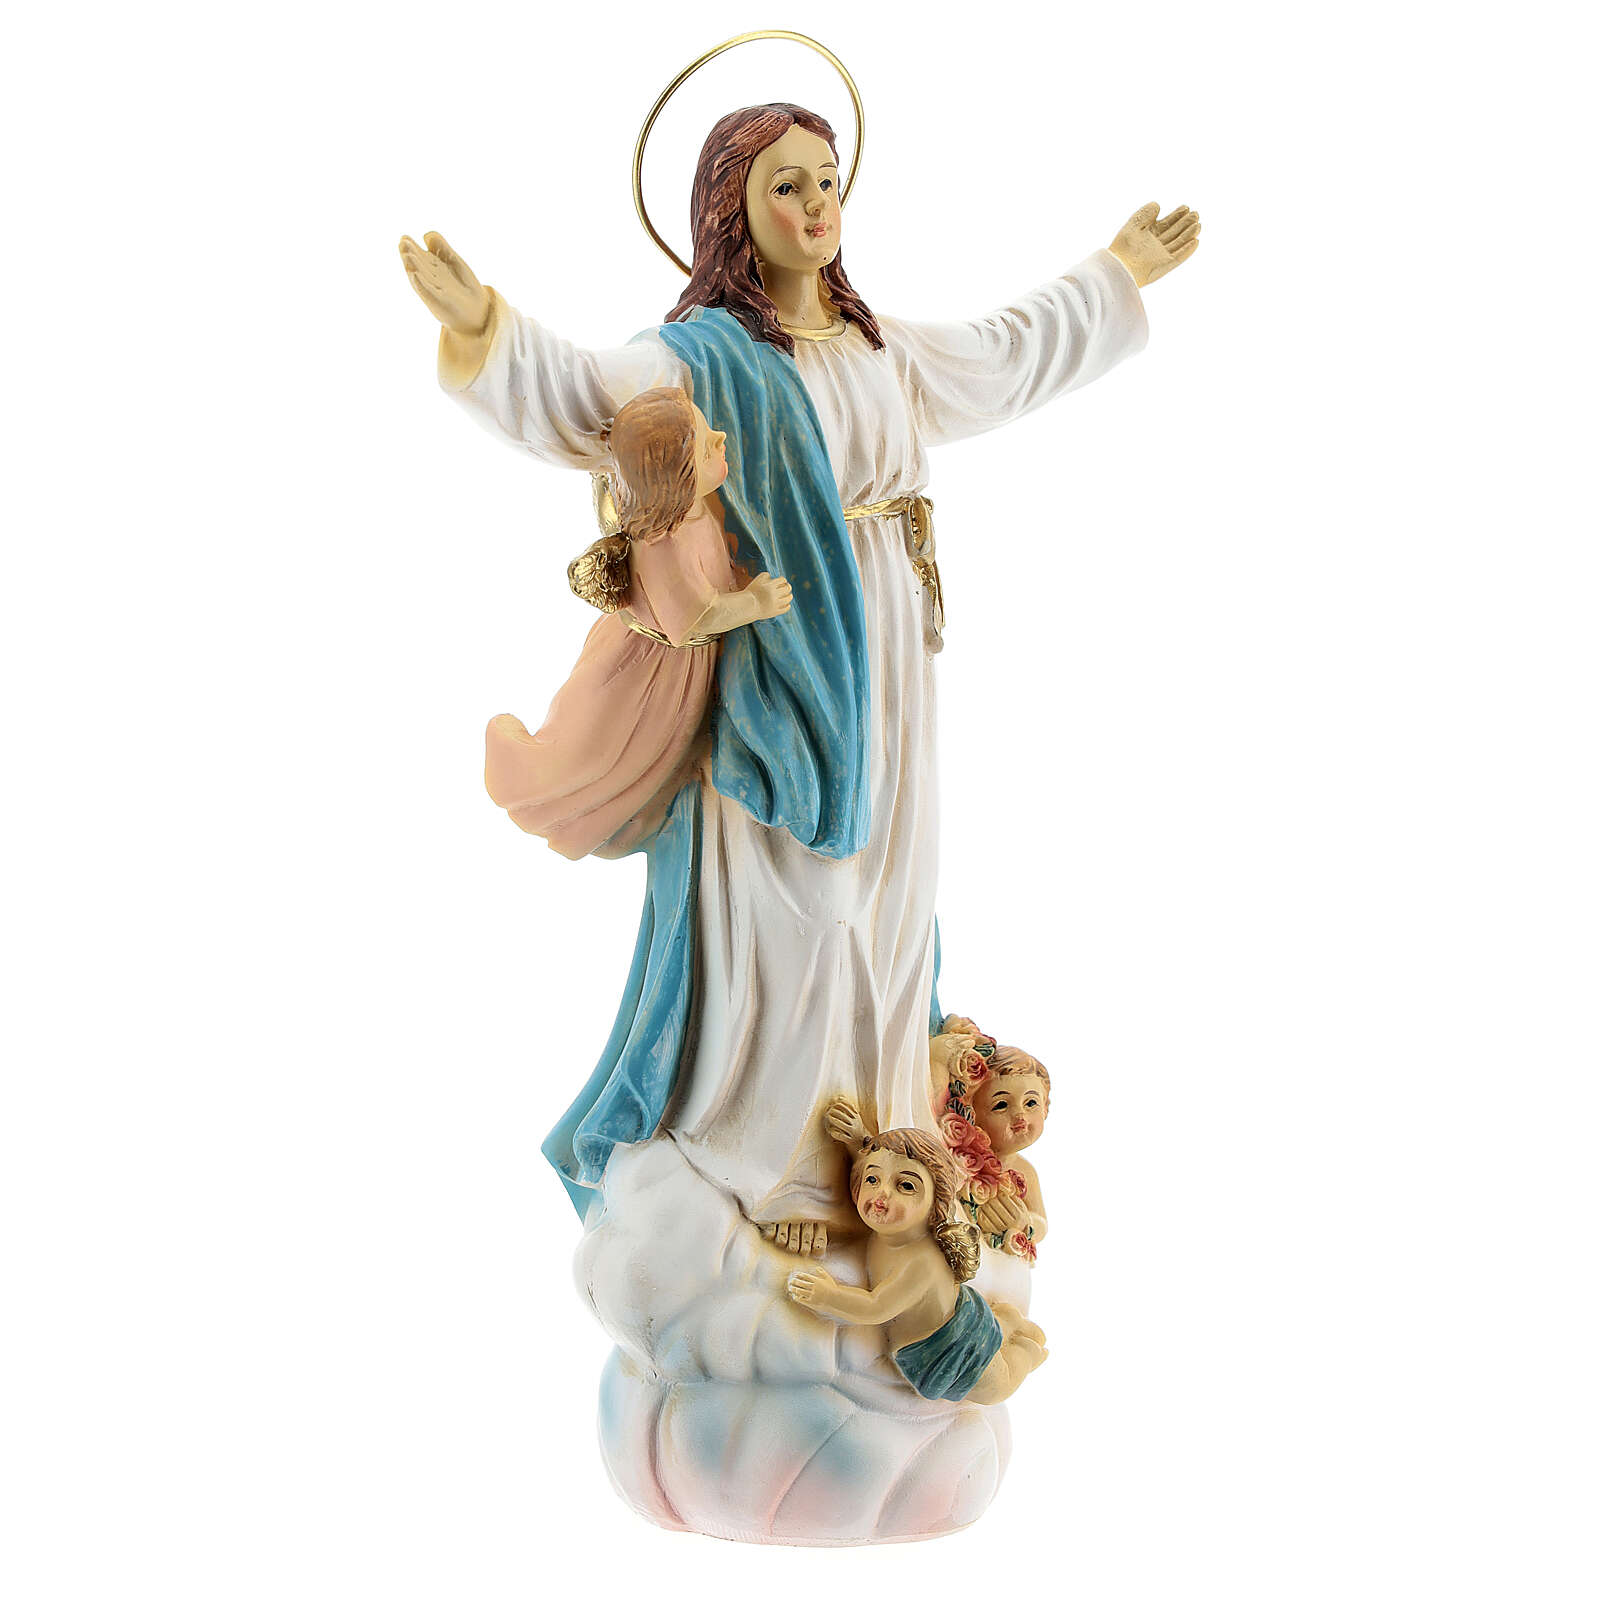 Assumption Mary angels statue resin 18x12x6 cm 4